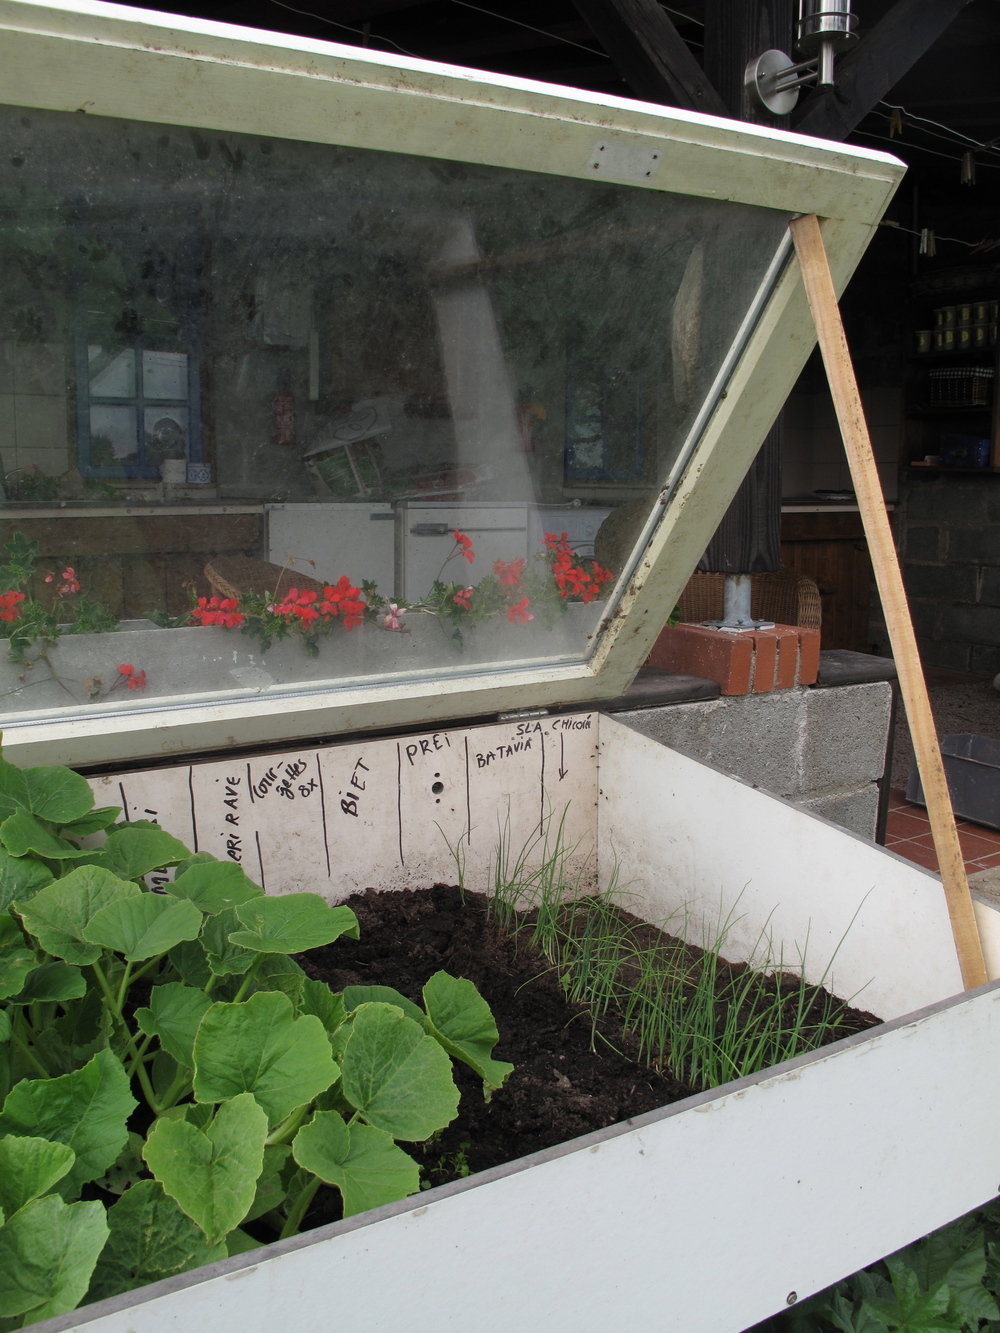 Tiny greenhouses for seedlings - made from an old school desk